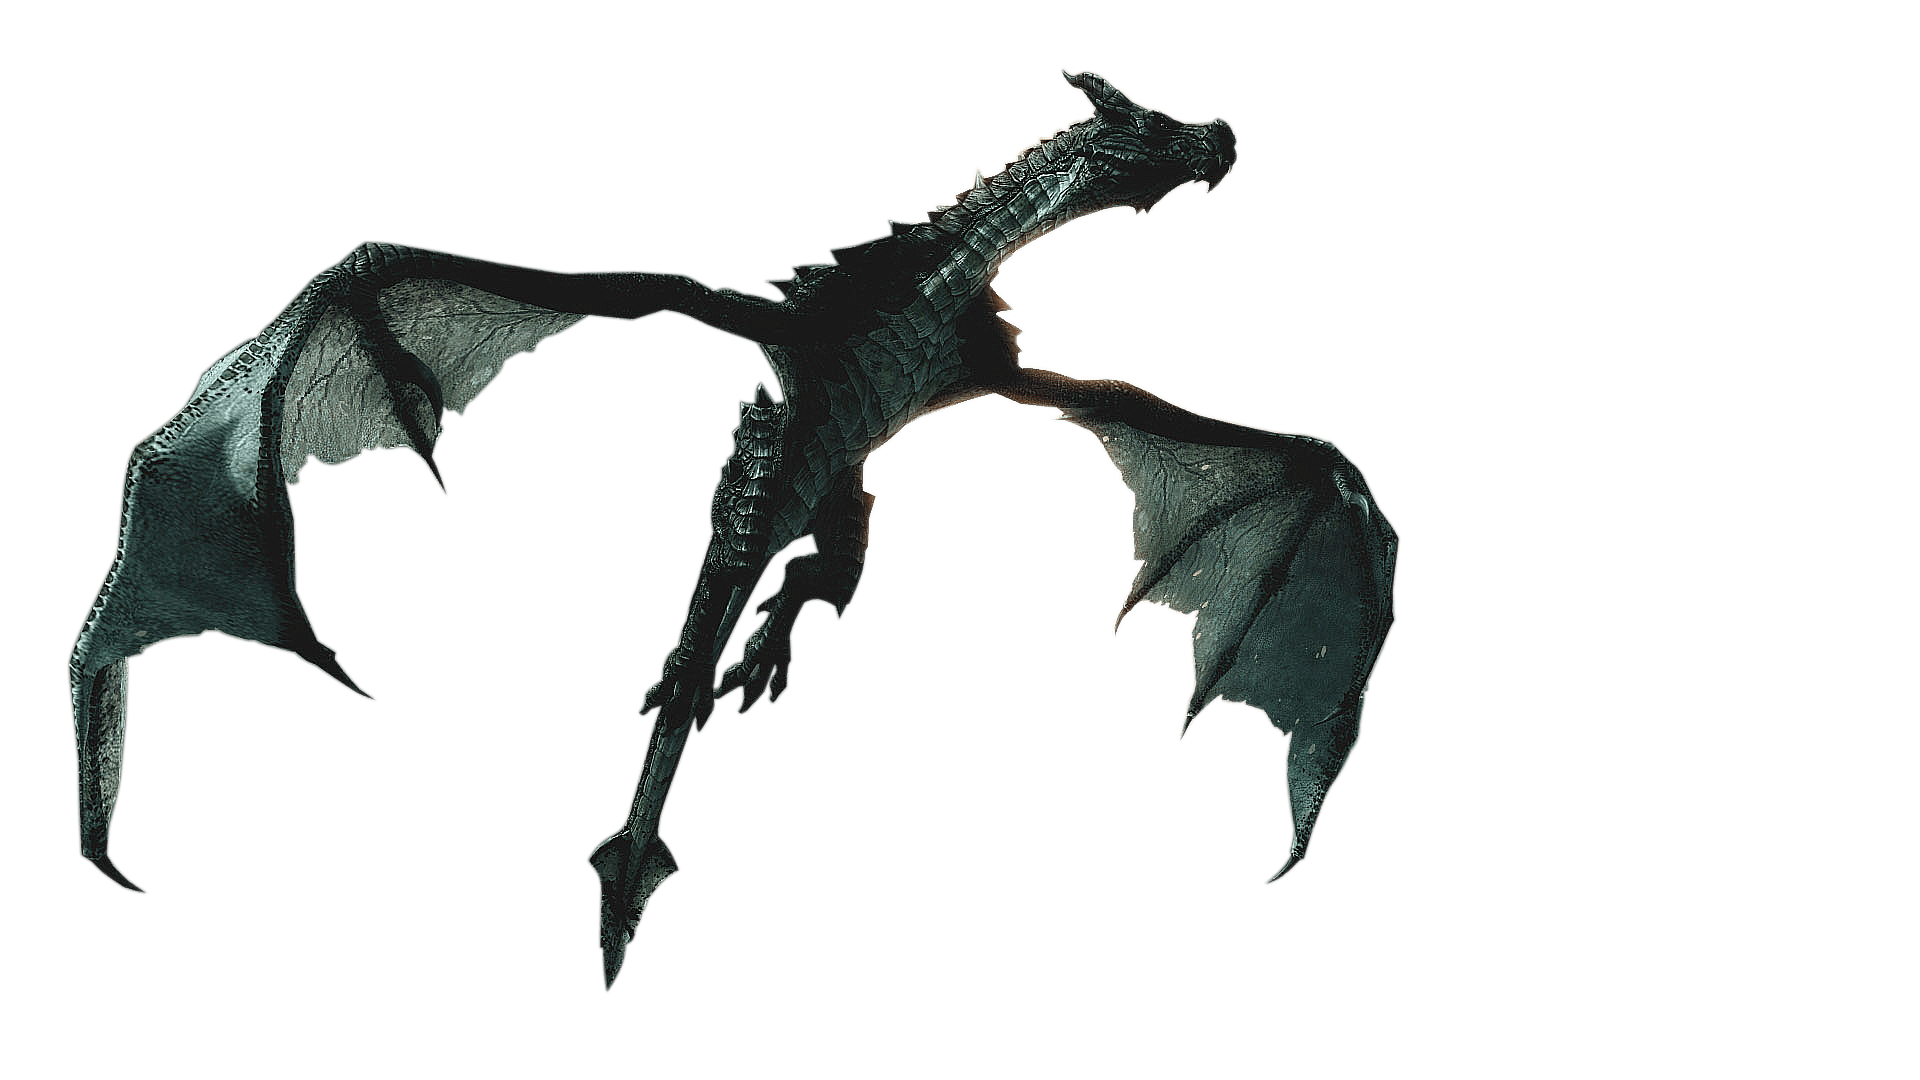 1920x1080 Elder Scrolls Skyrim Flying Dragon Transparent Png